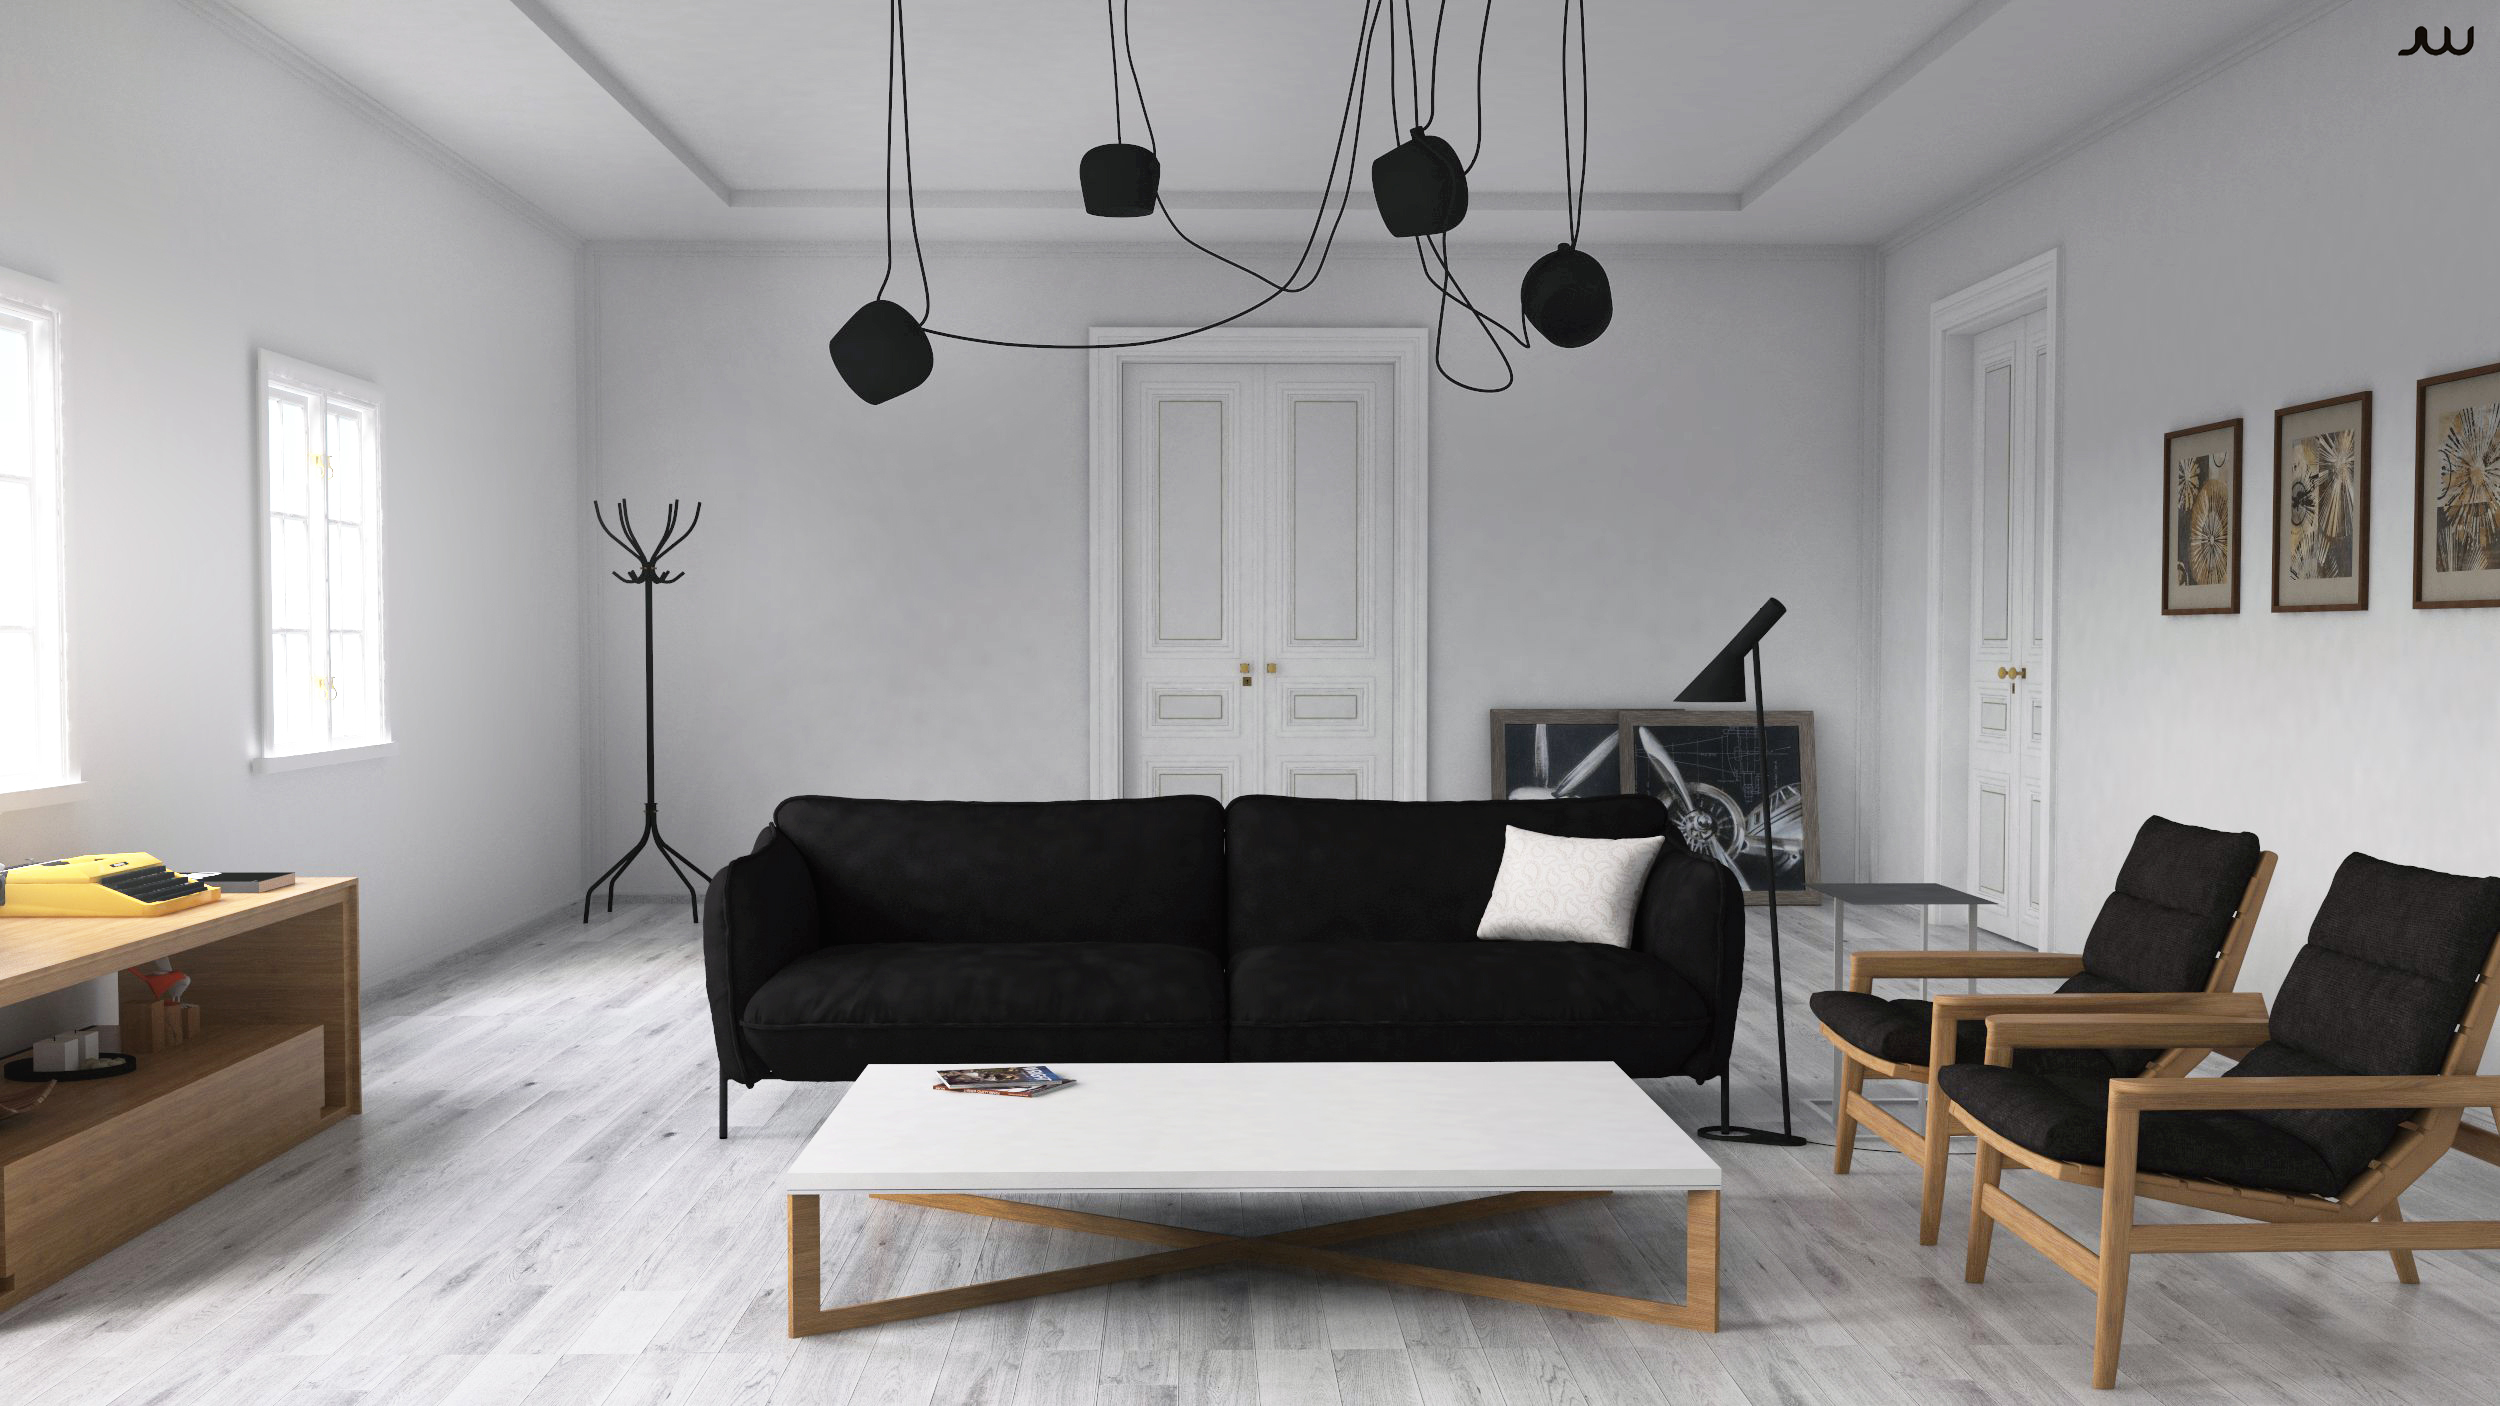 Making Of Scandinavian Interior With Sketchup Vray And